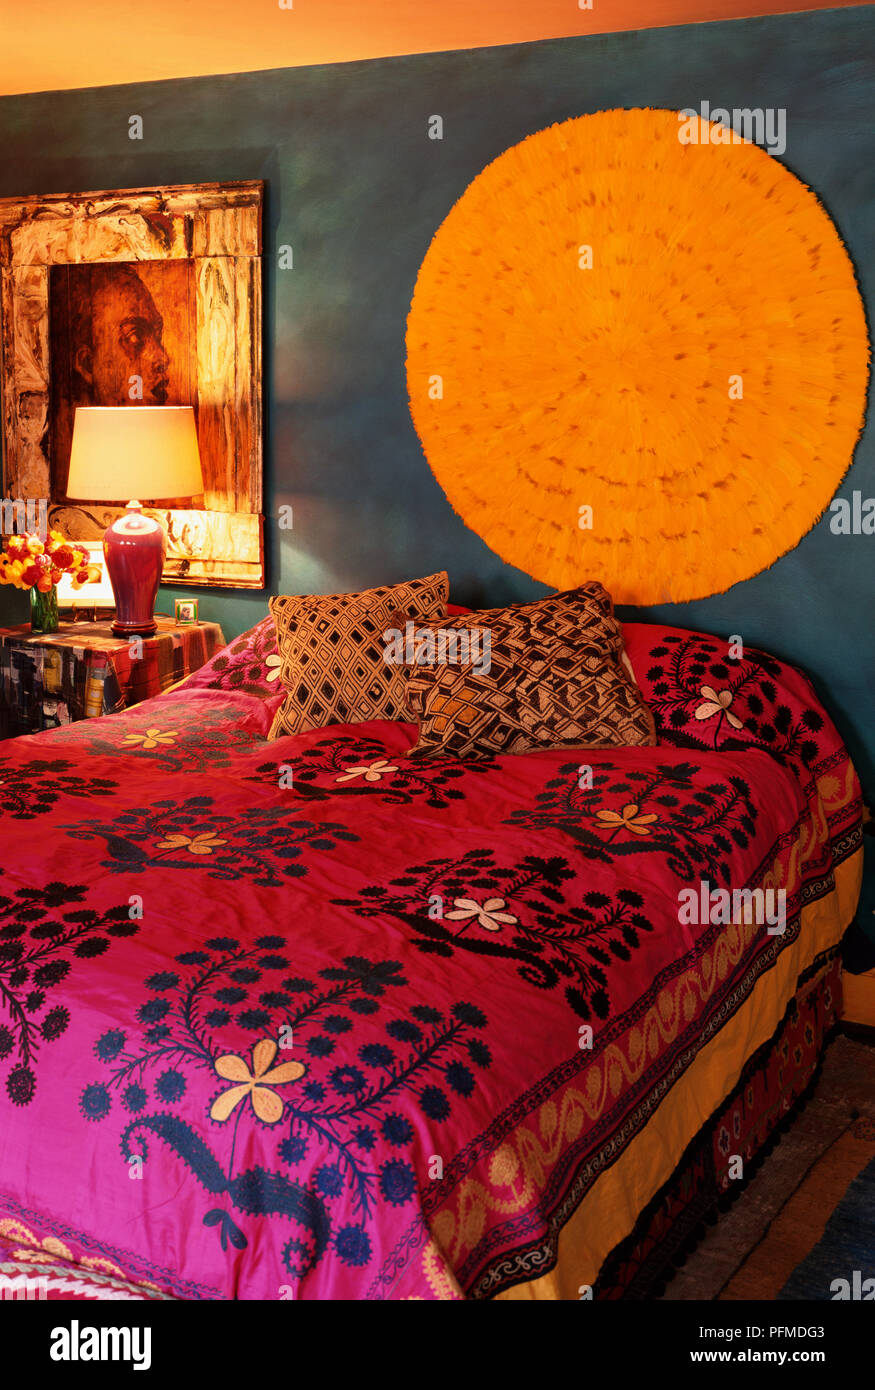 Indian Style Themed Bedroom With Pink And Red Patterned Bed Cover